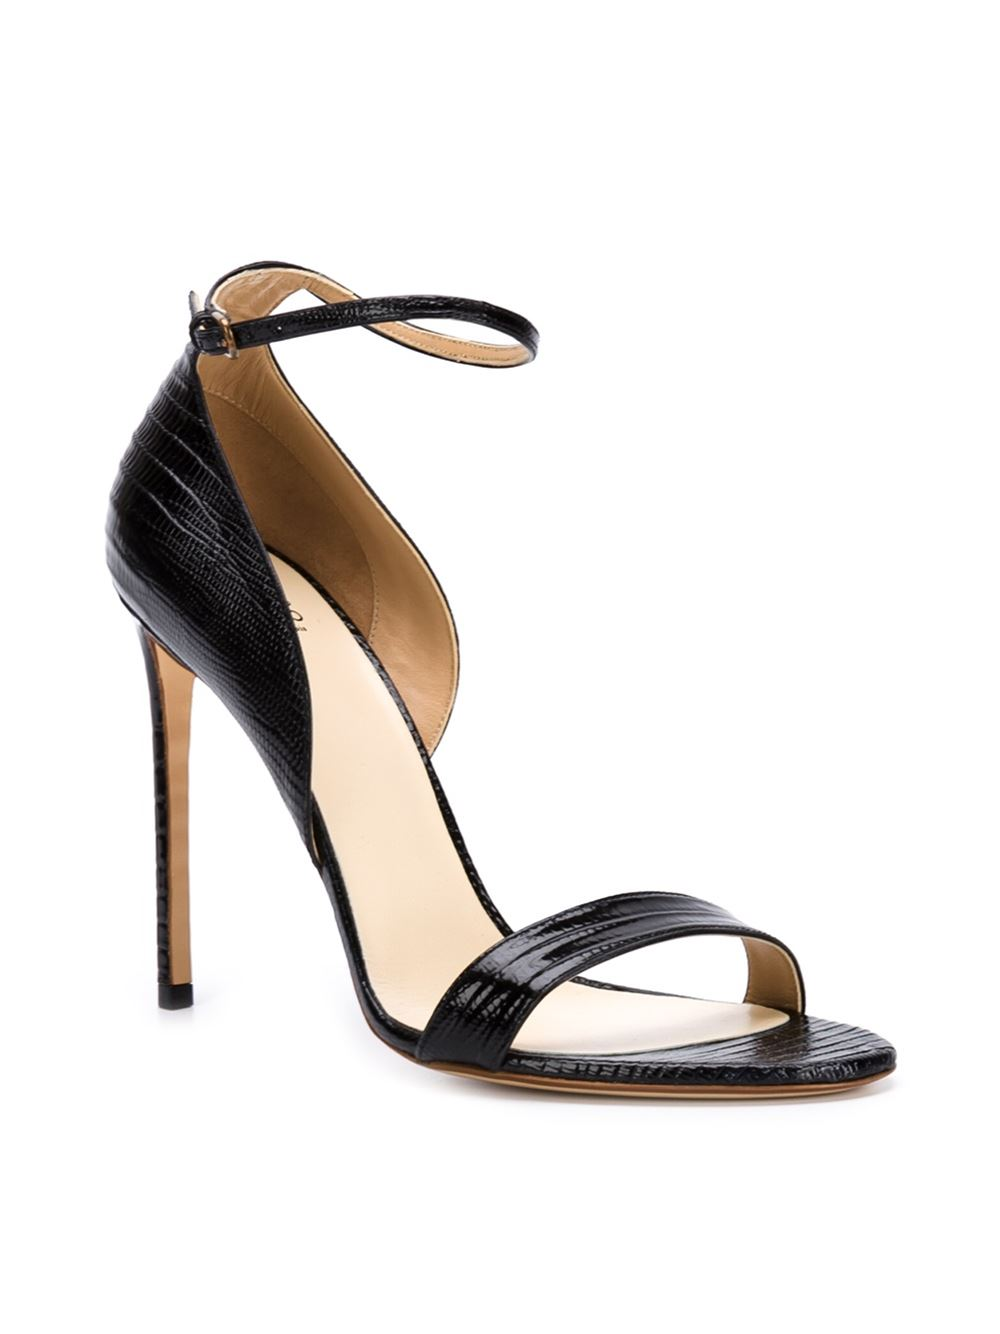 Francesco Russo Croc Effect Sandals - The Webster - Farfetch.com